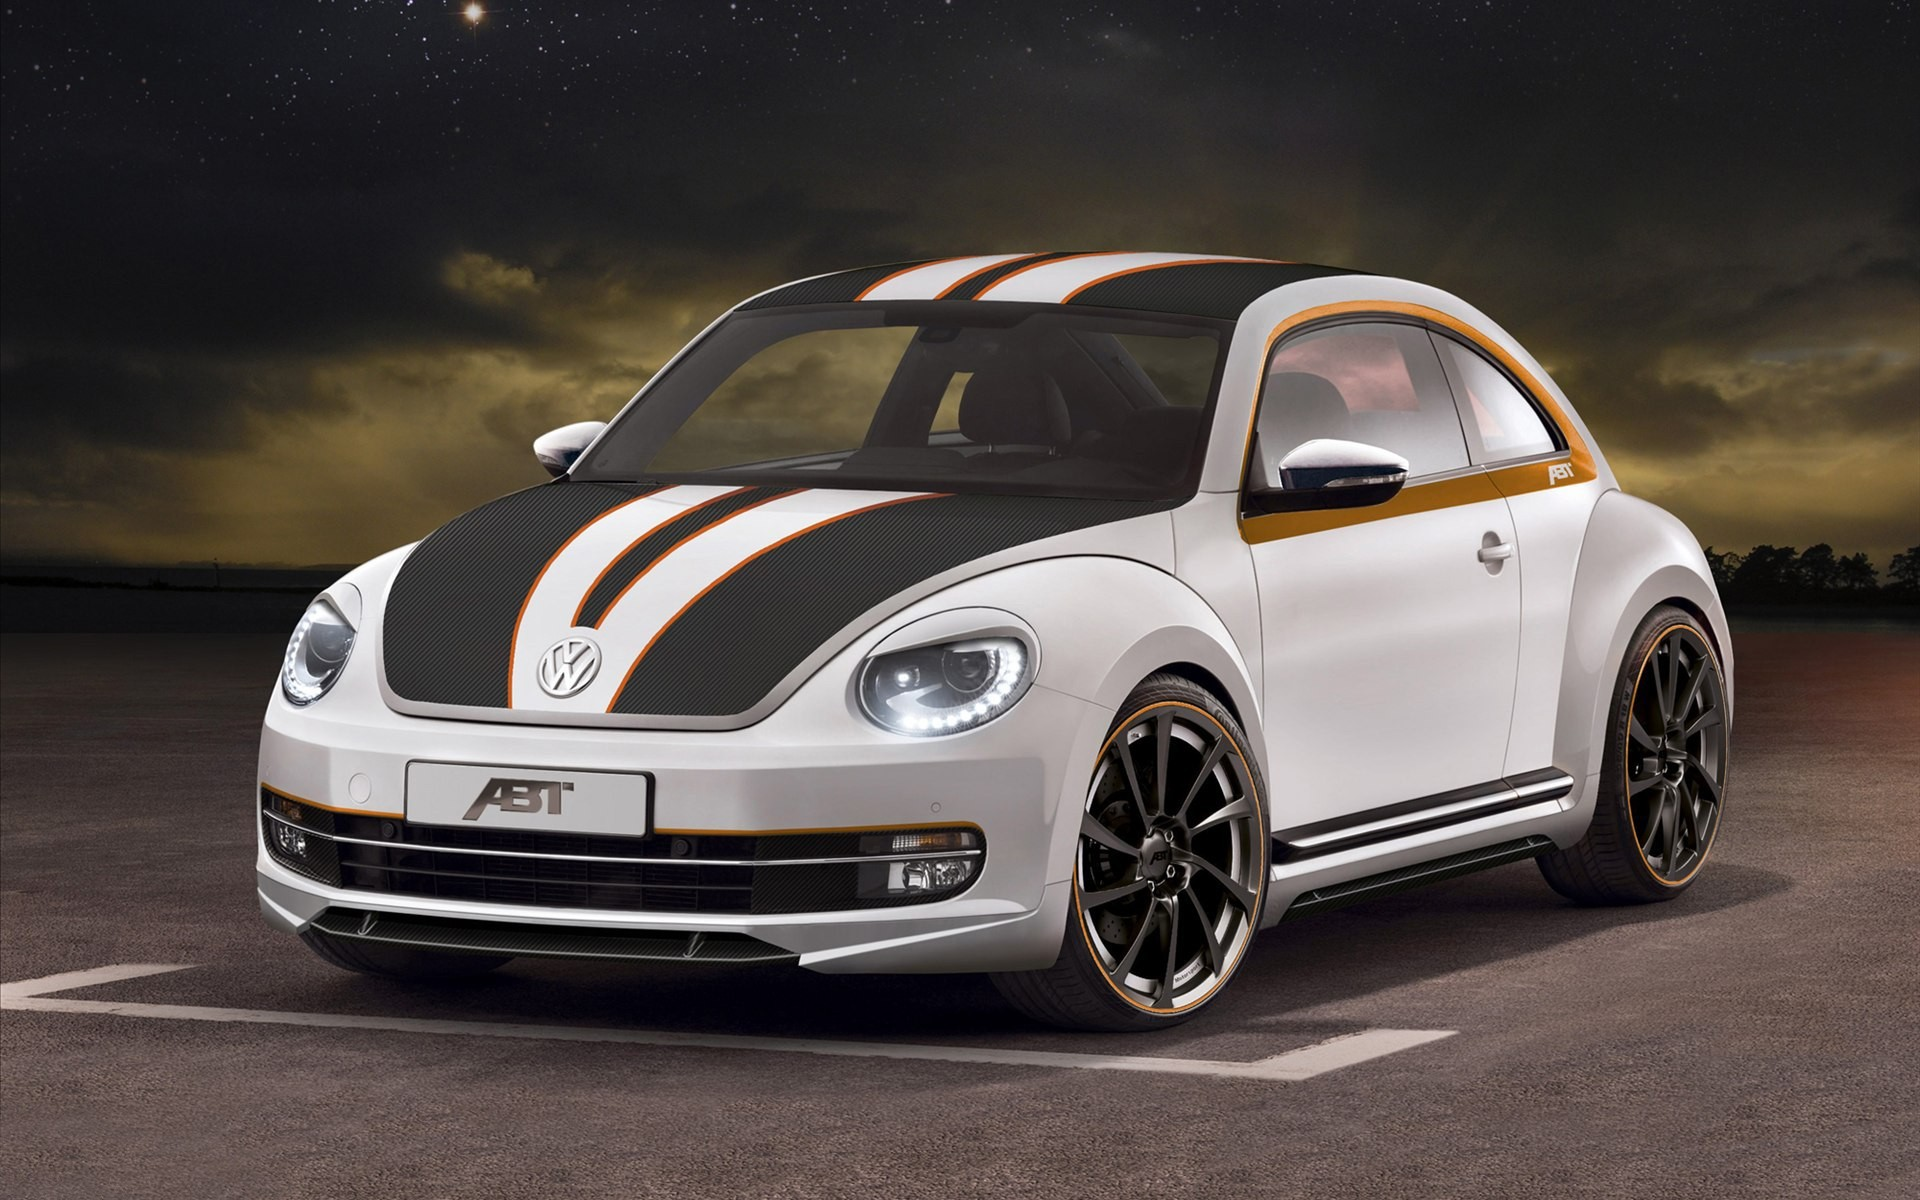 ABT Sportsline Volkswagen Beetle 2012 Wallpaper | HD Car ...